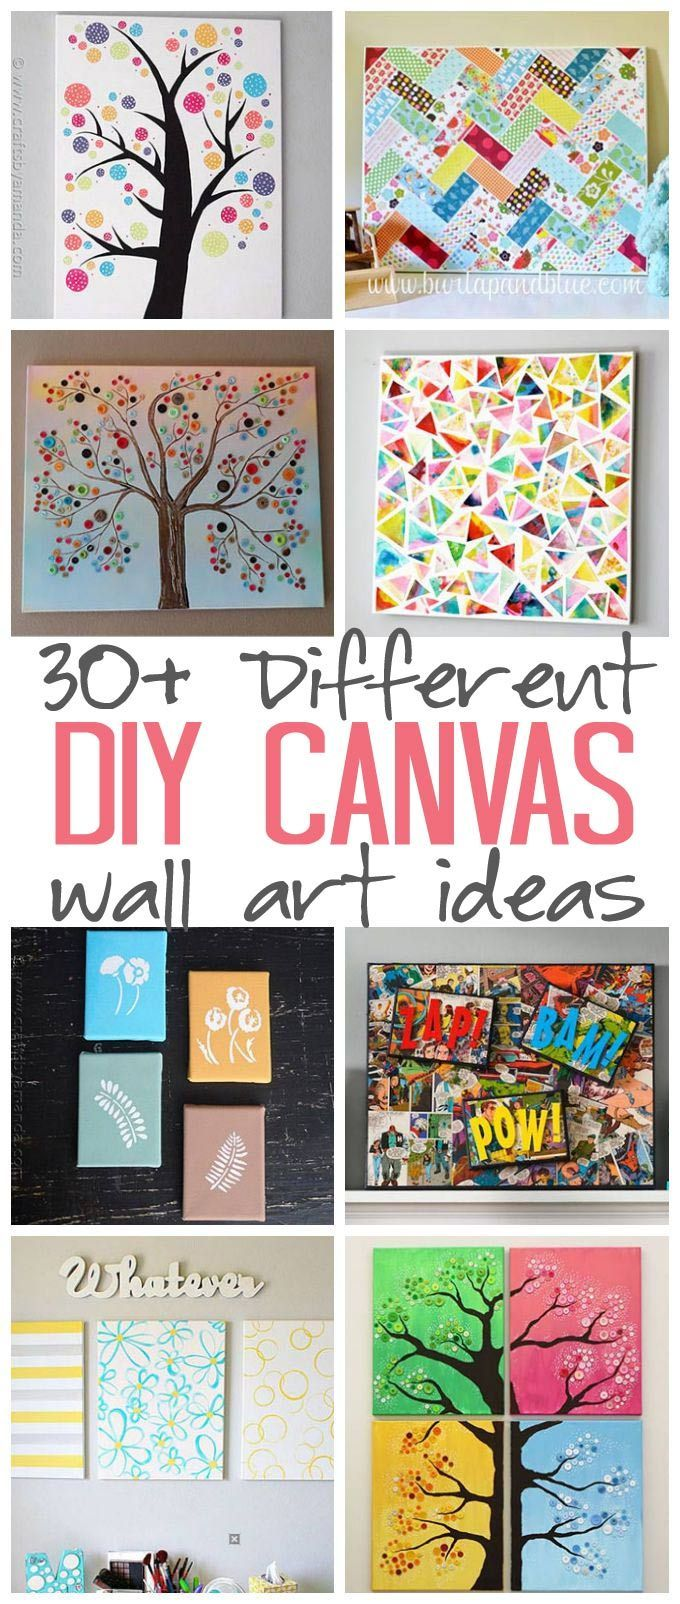 DIY Canvas Wall Art Ideas